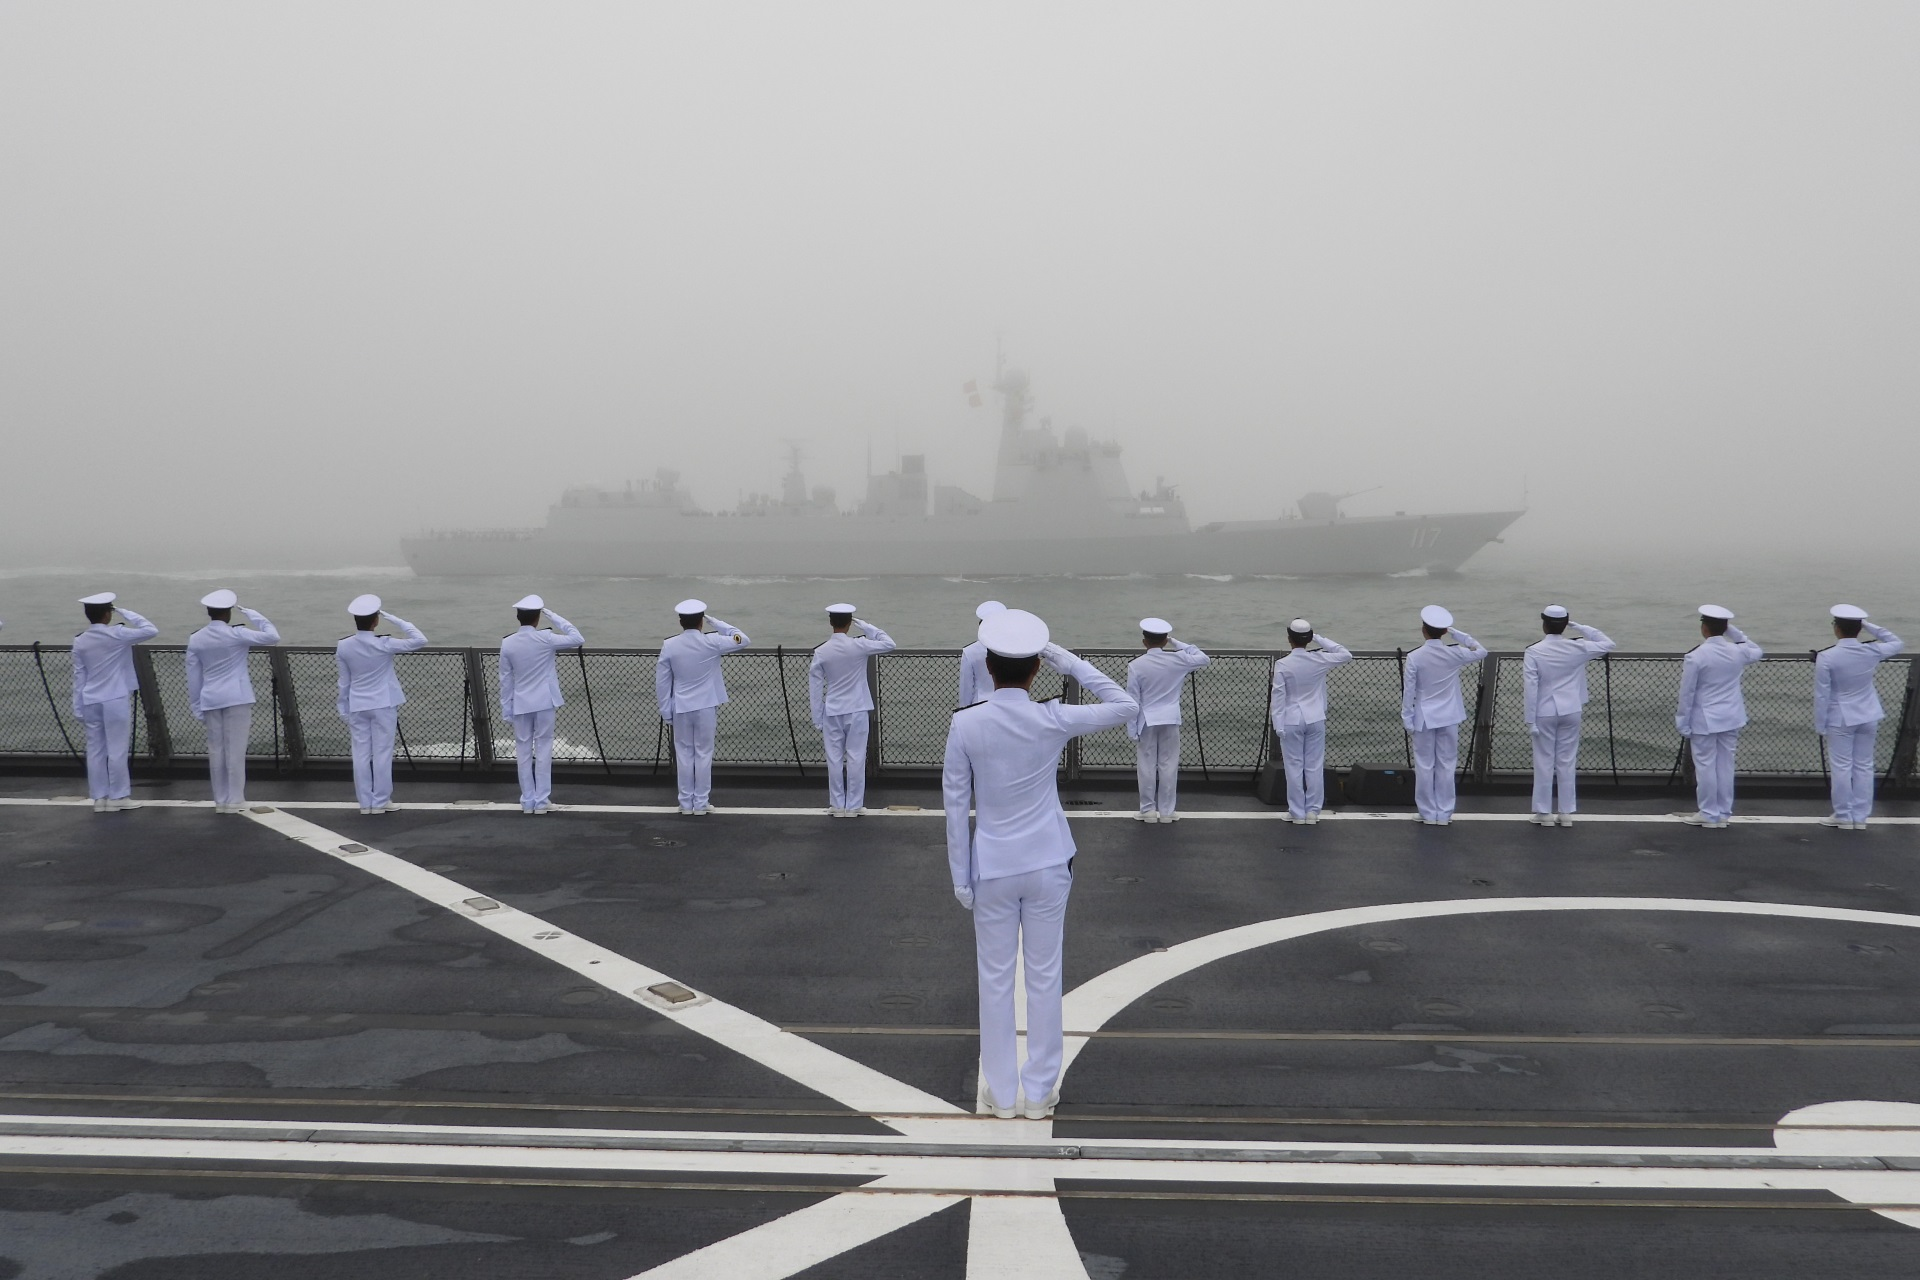 Crew of RSN's Formidable-class Frigate RSS Stalwart saluting President of the People's Republic of China Xi Jinping as he reviews ships participating in the International Fleet Review on the People Liberation Army Navy's PLANS Xining.